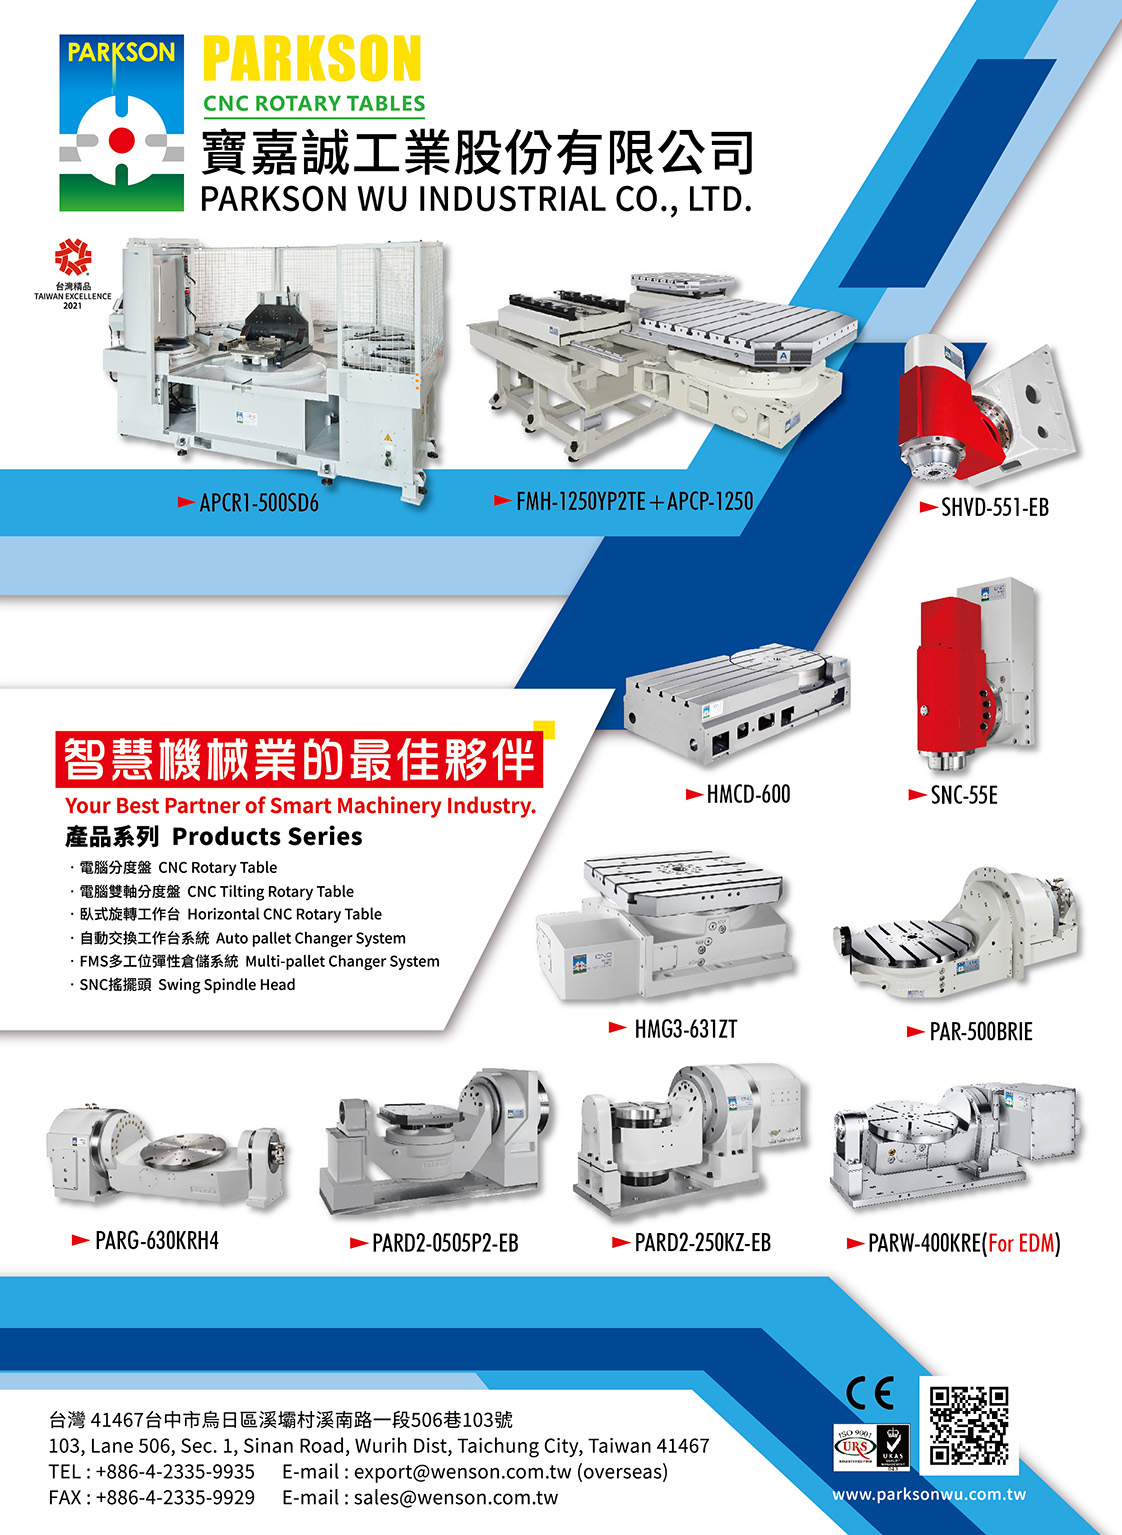 PARKSON WU INDUSTRIAL CO., LTD.